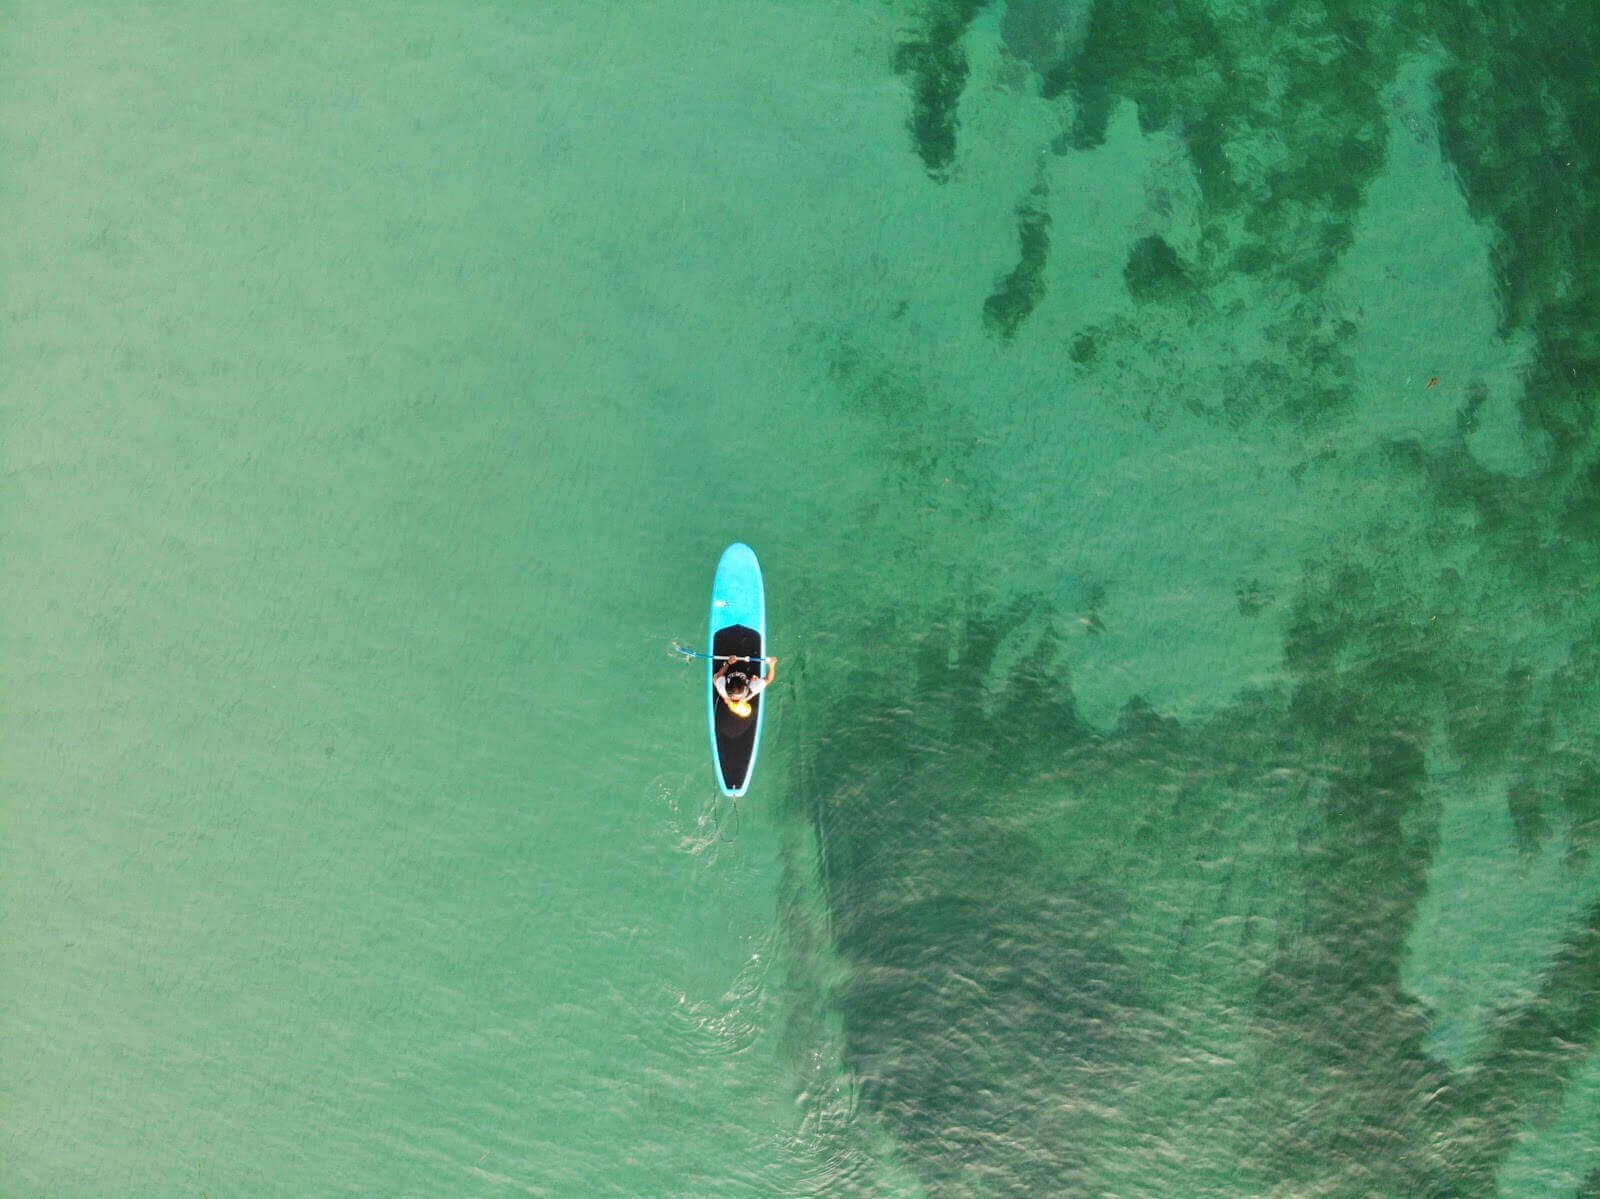 Stand-Up Paddle Boarding in India